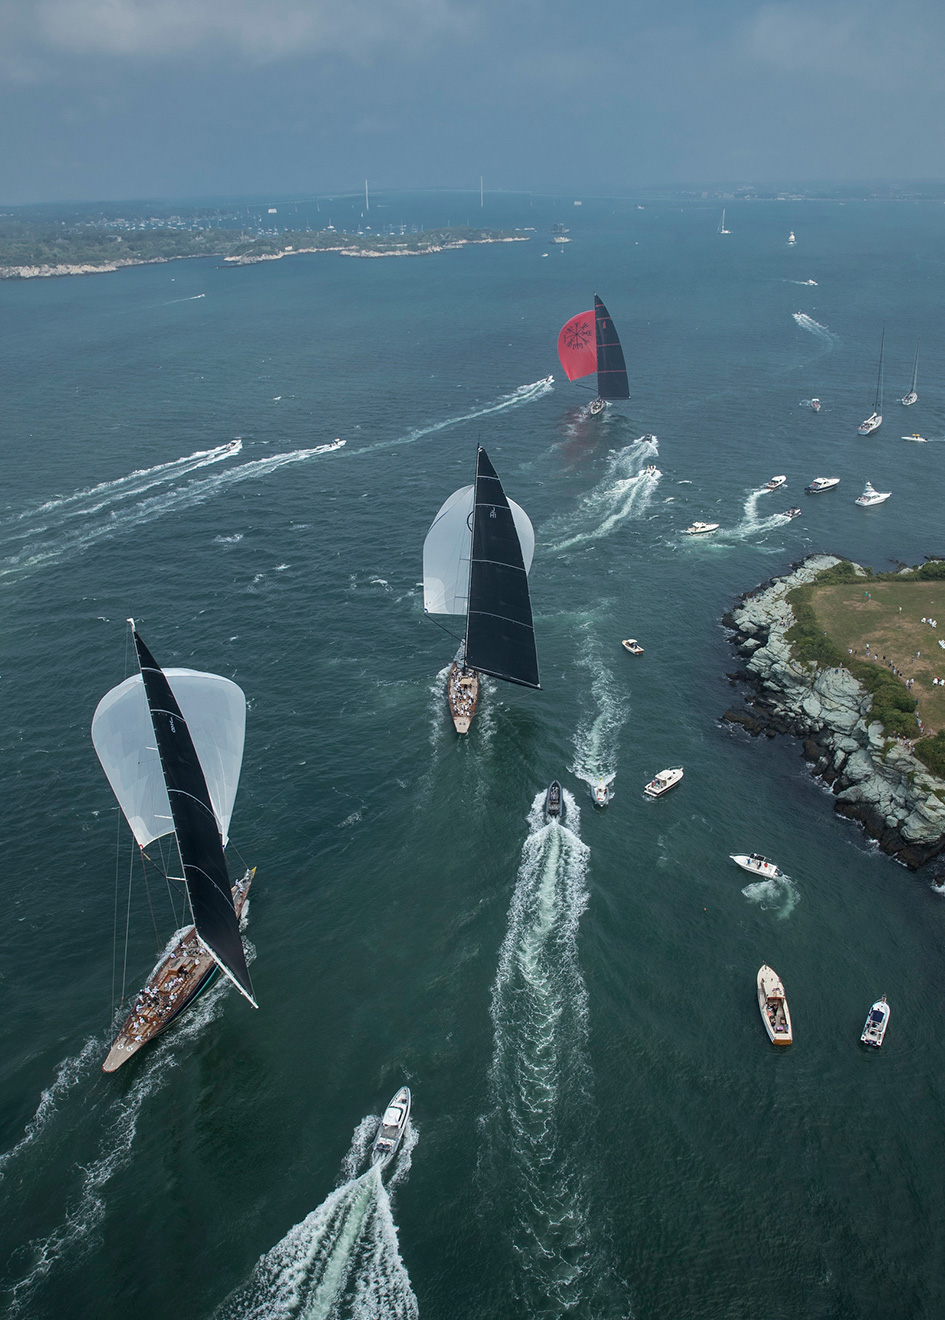 spectator-boats-get-close-to-the-action-at-the-2017-j-class-world-championships-credit-onne-van-der-wal